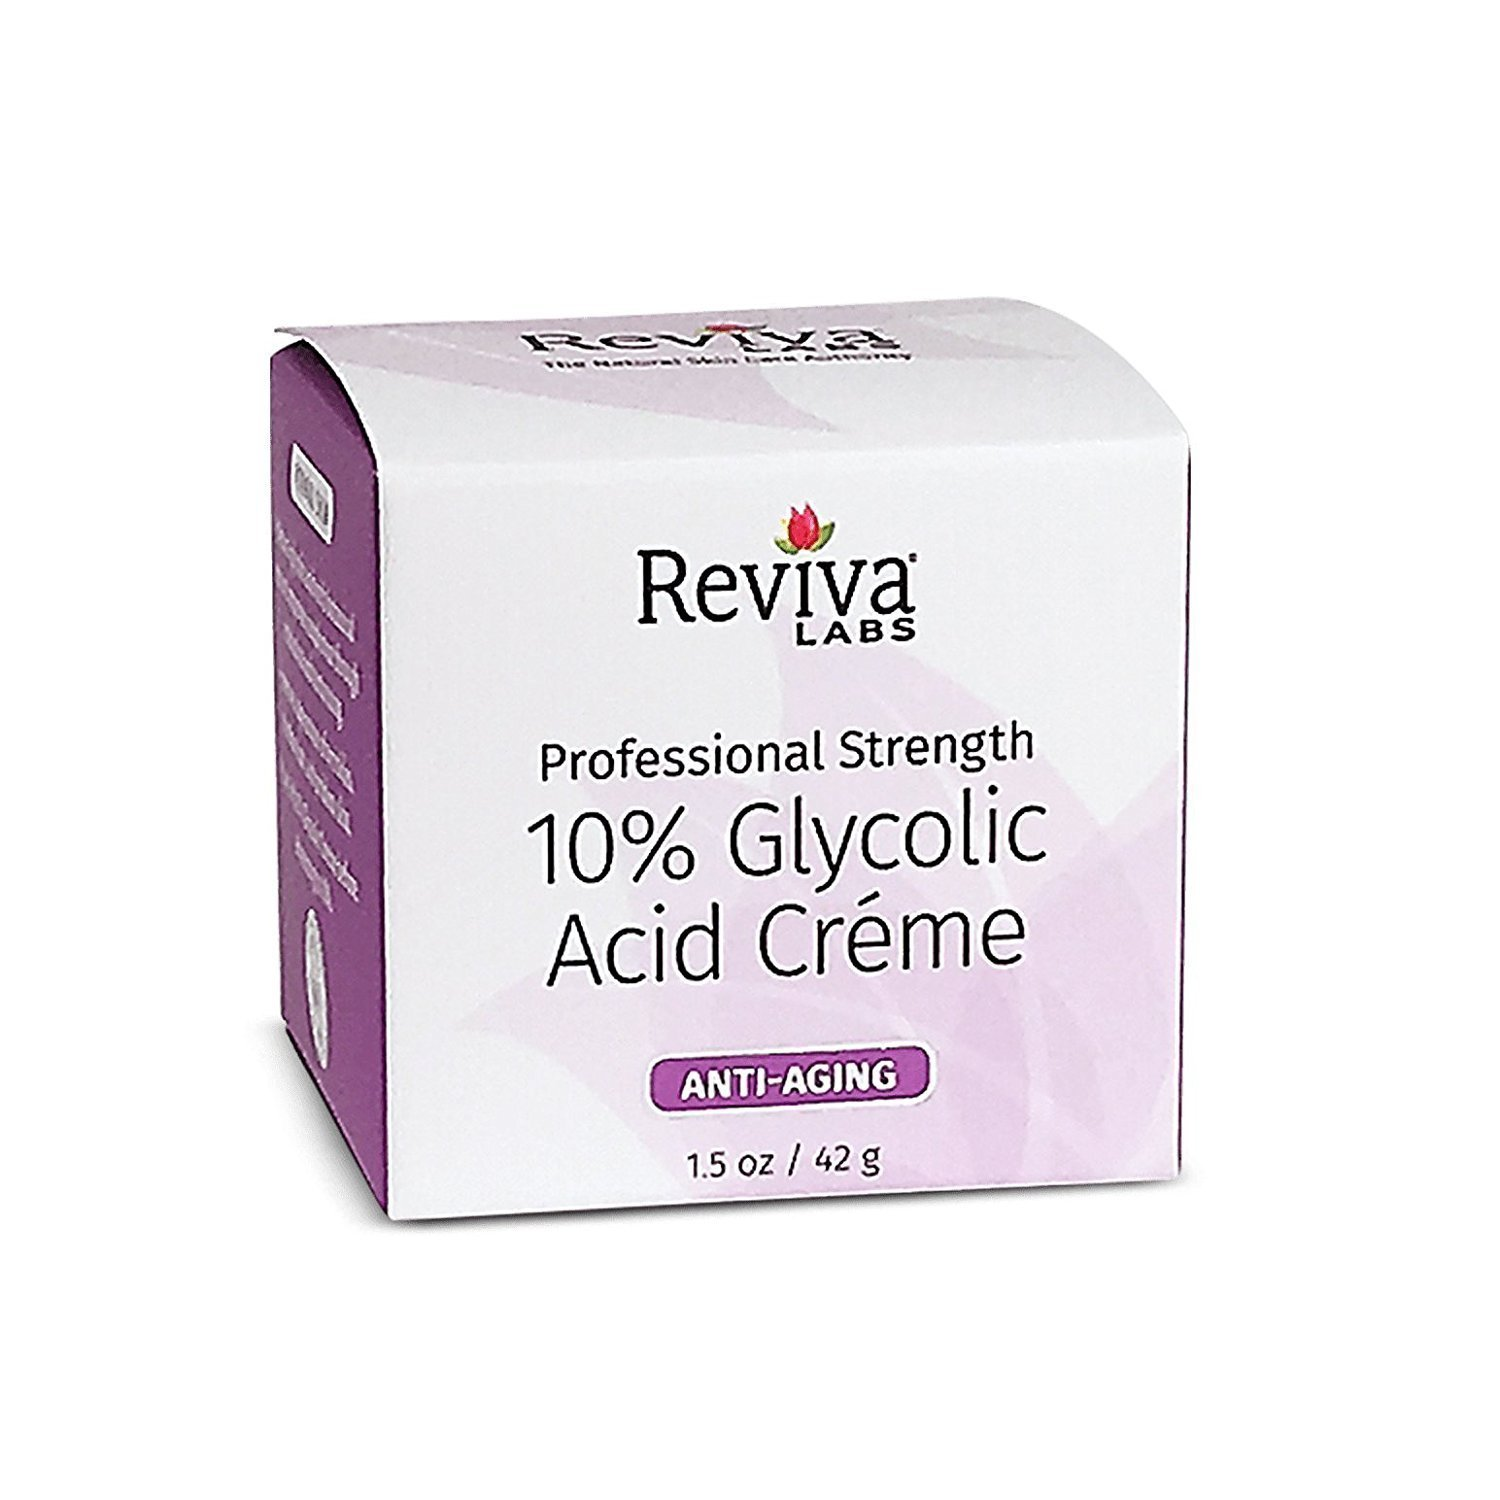 Reviva Labs 10% Glycolic Acid Cream - 1.5 oz - Pack of 2